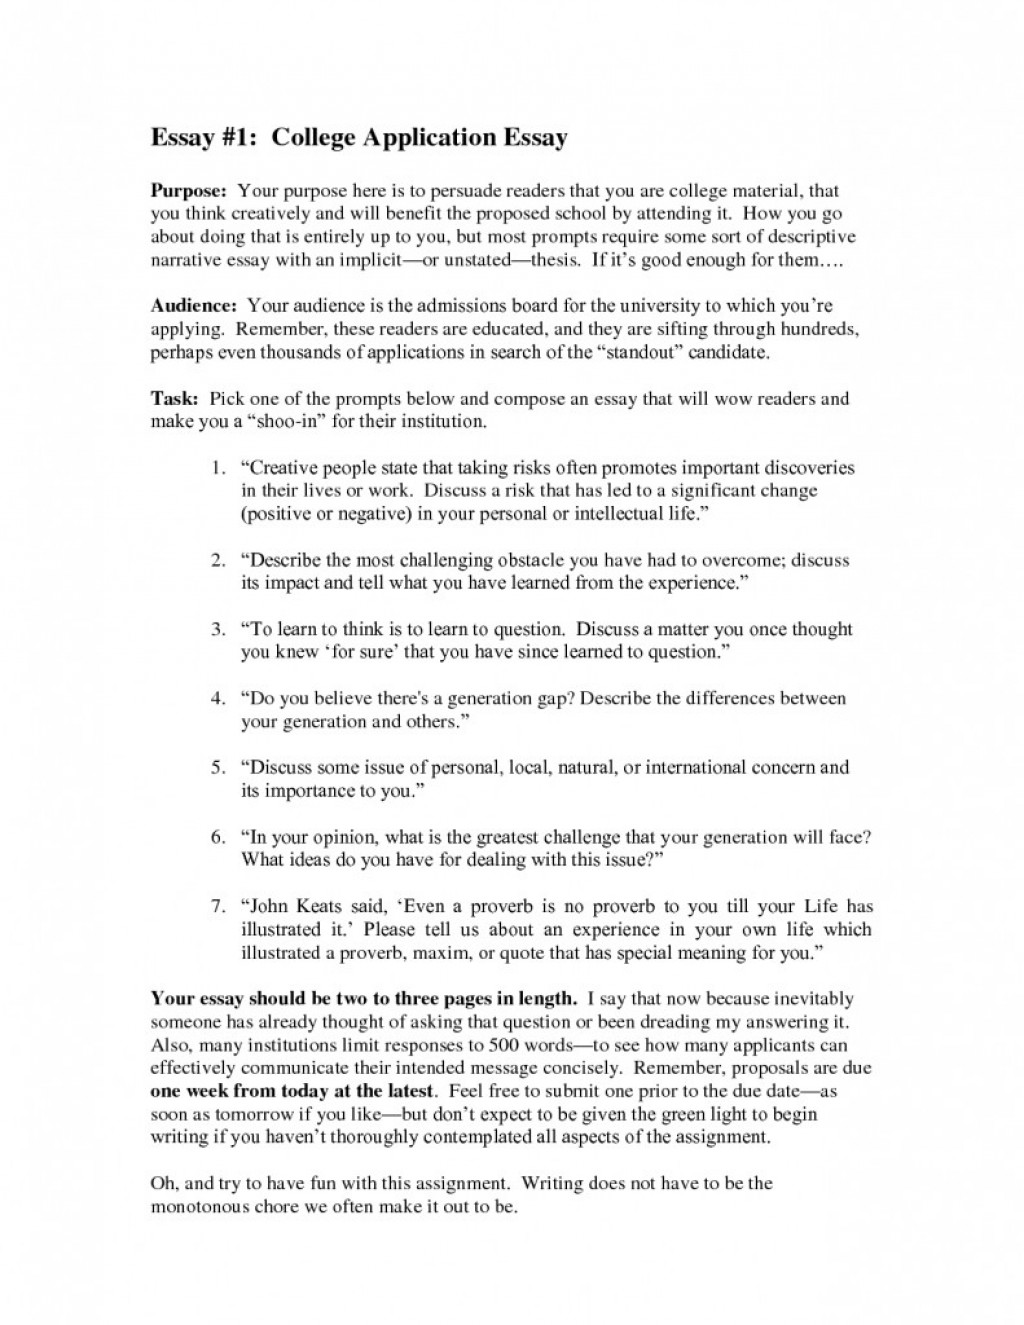 013 Uc Application Essay Prompts Example College Imposing 2016-17 Examples Prompt 1 Berkeley 2017 Large